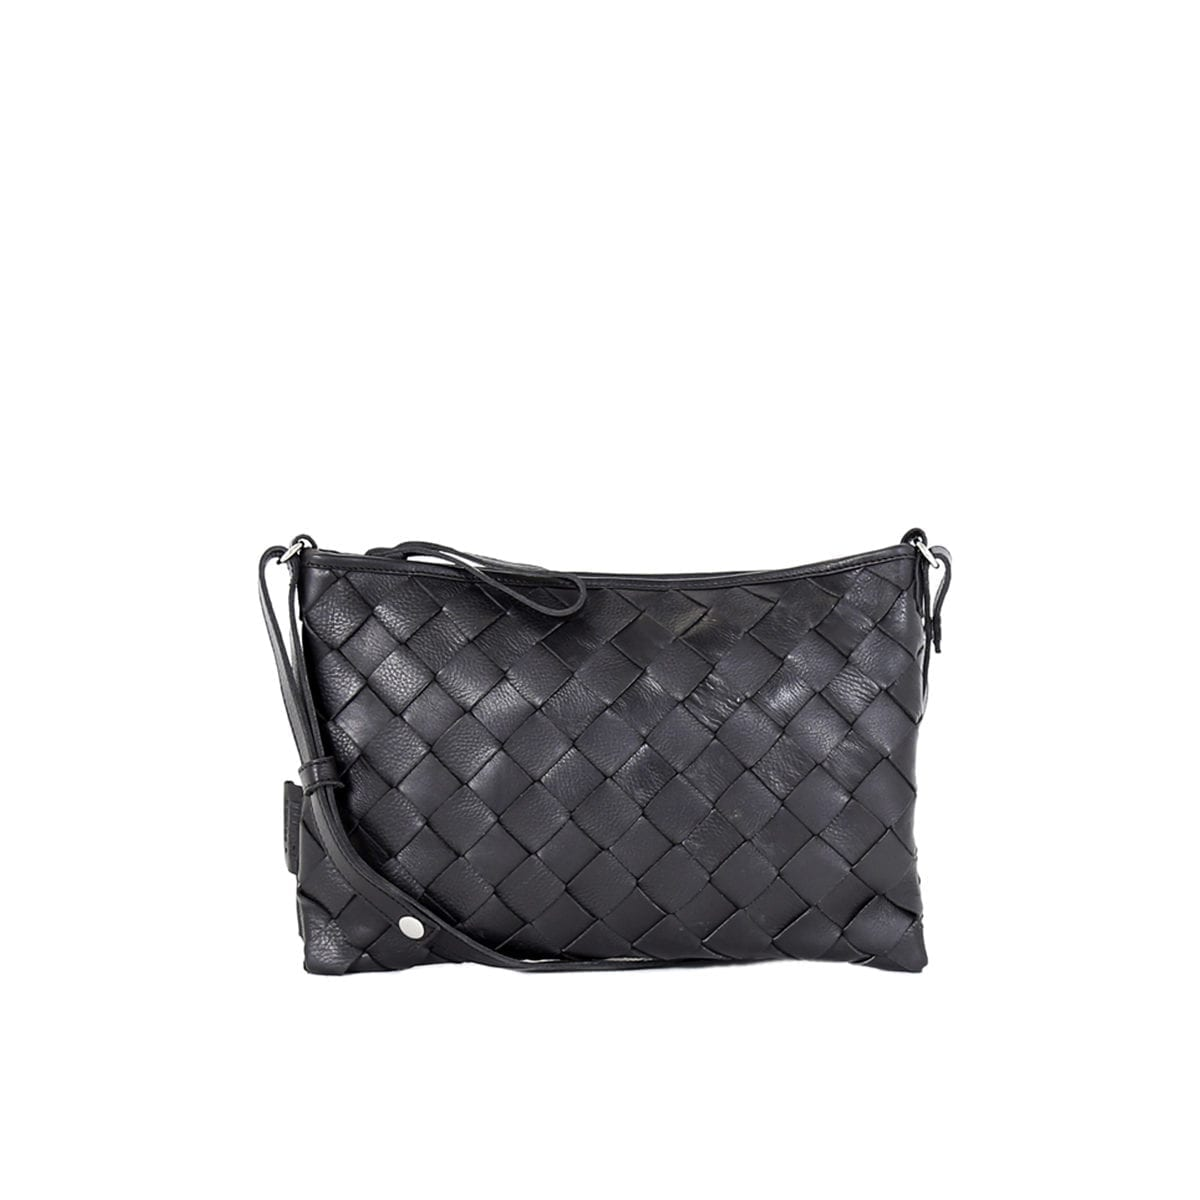 LUMI Trine Woven Clutch Large in classic black. This roomy clutch with woven textured details is a perfect day bag that fits your small daily essentials